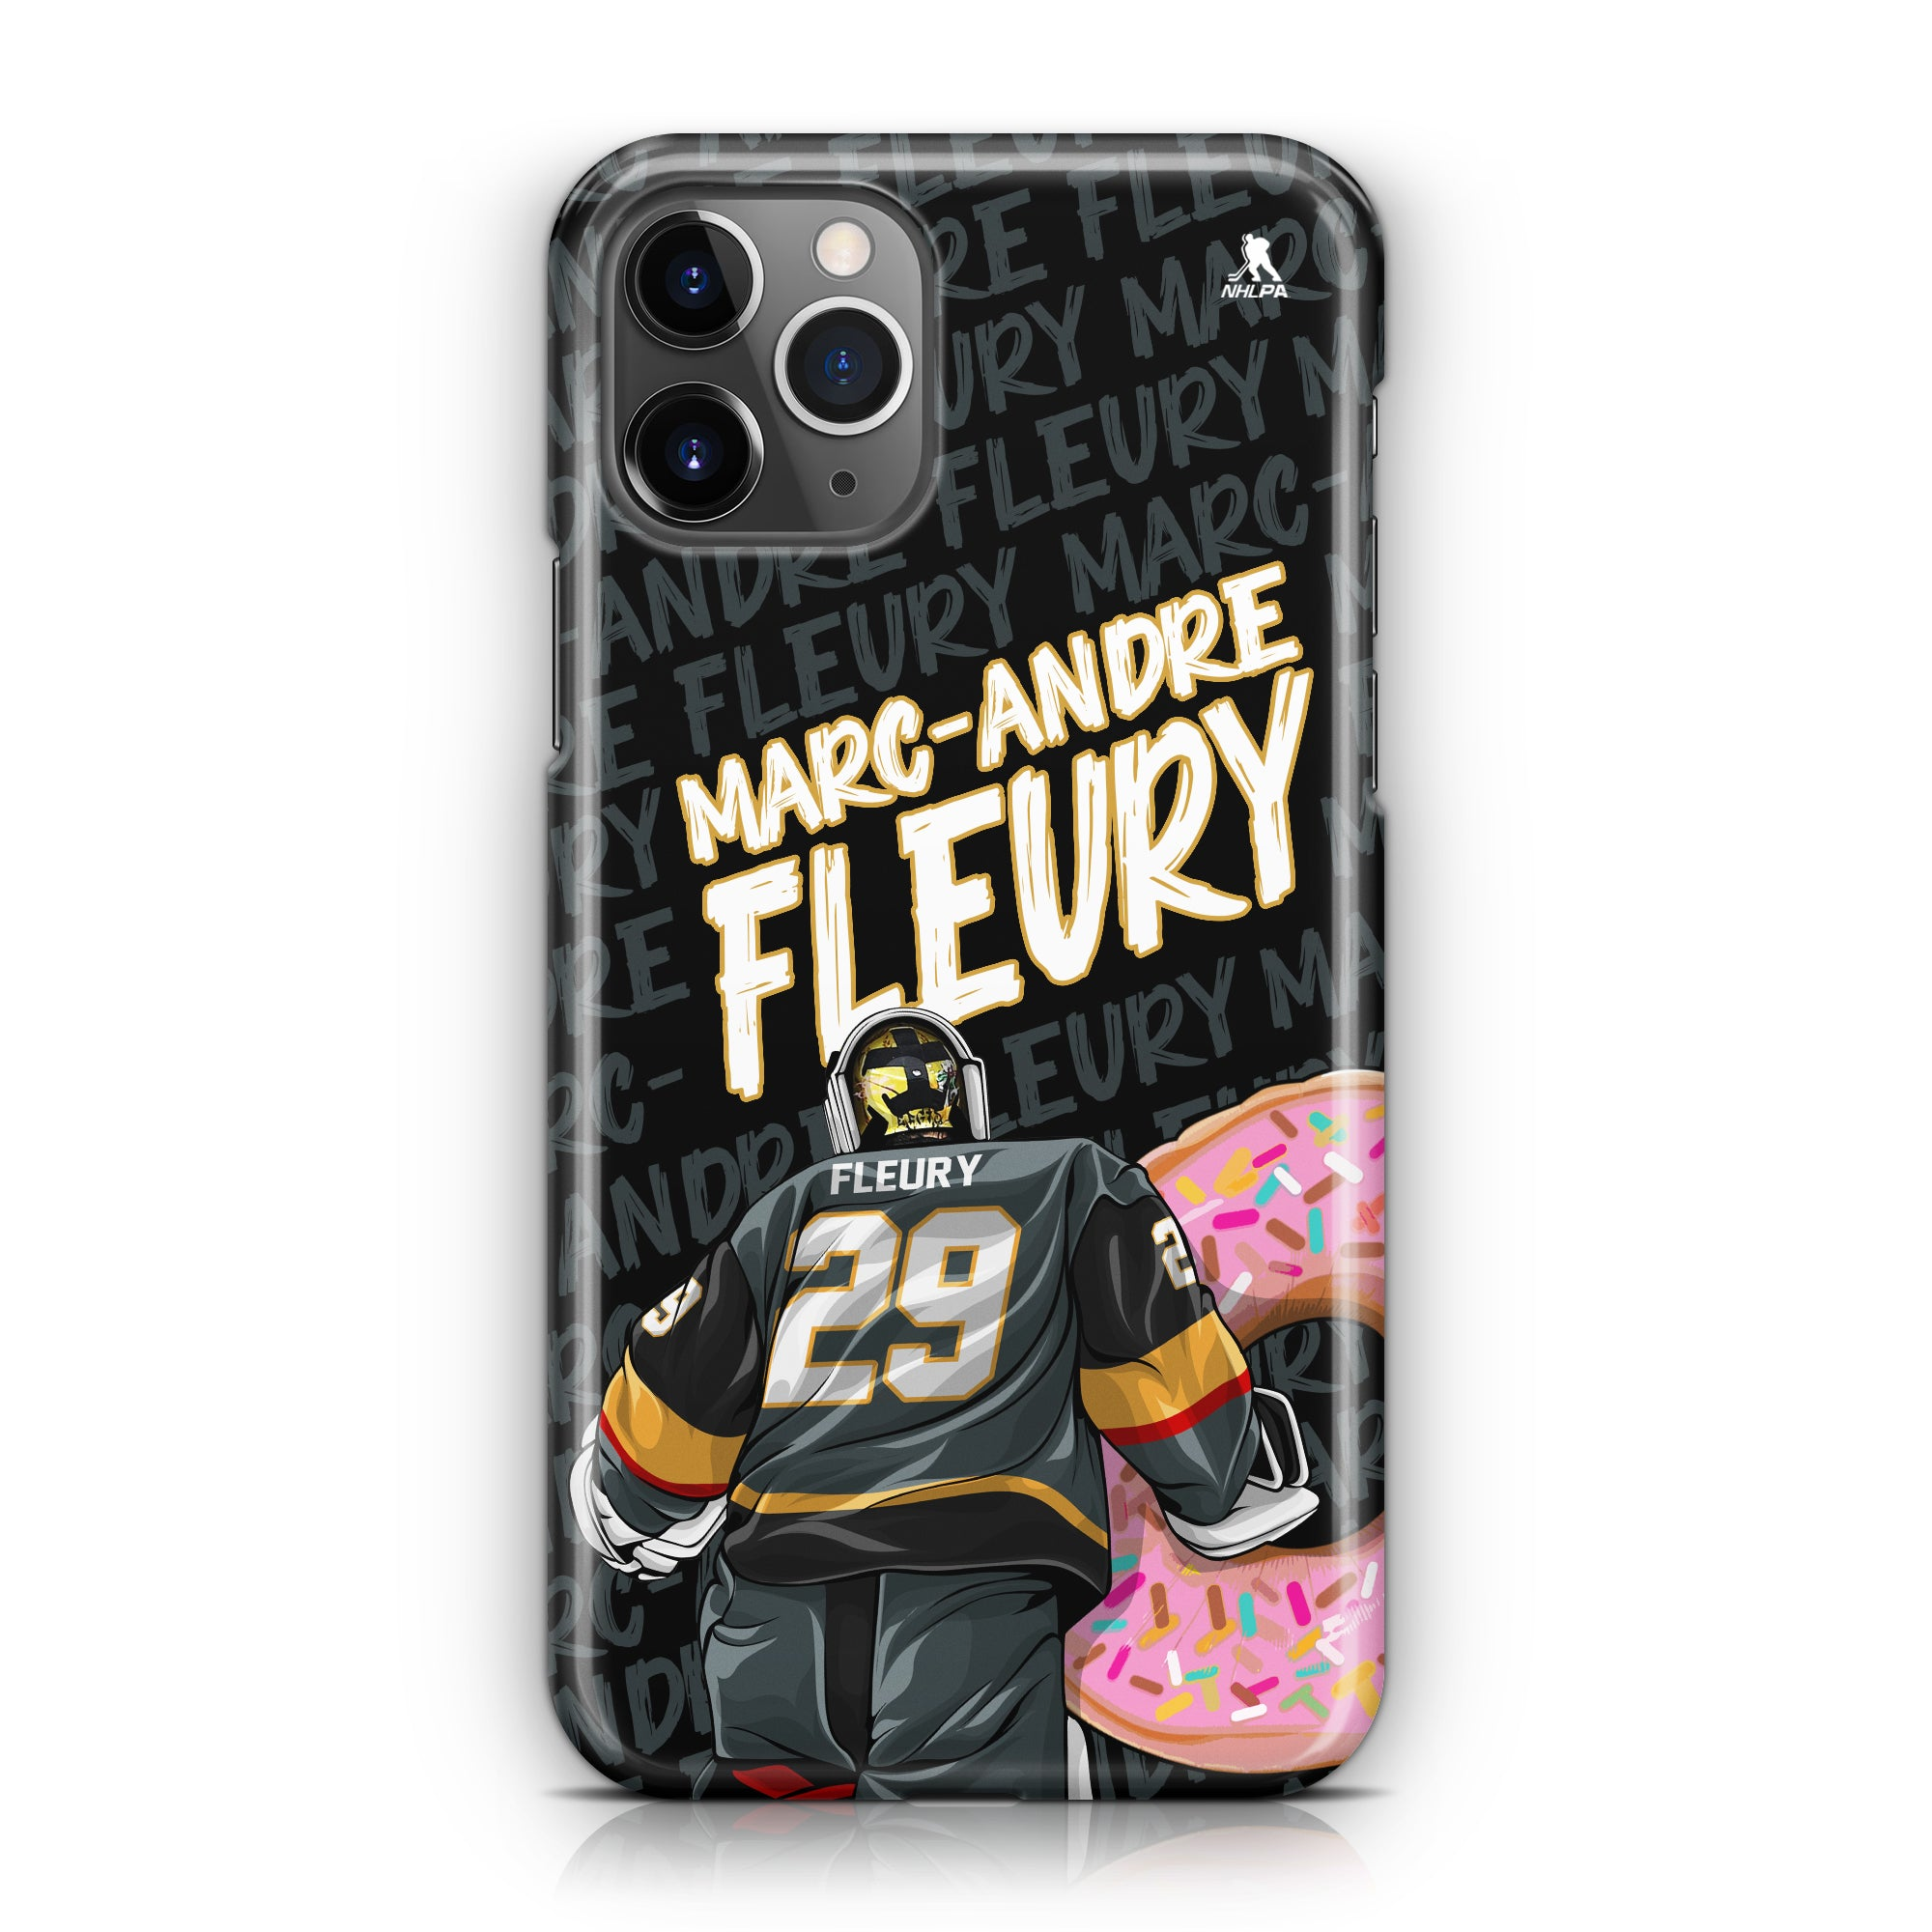 Fleury Donut Star Series 2.0 Case